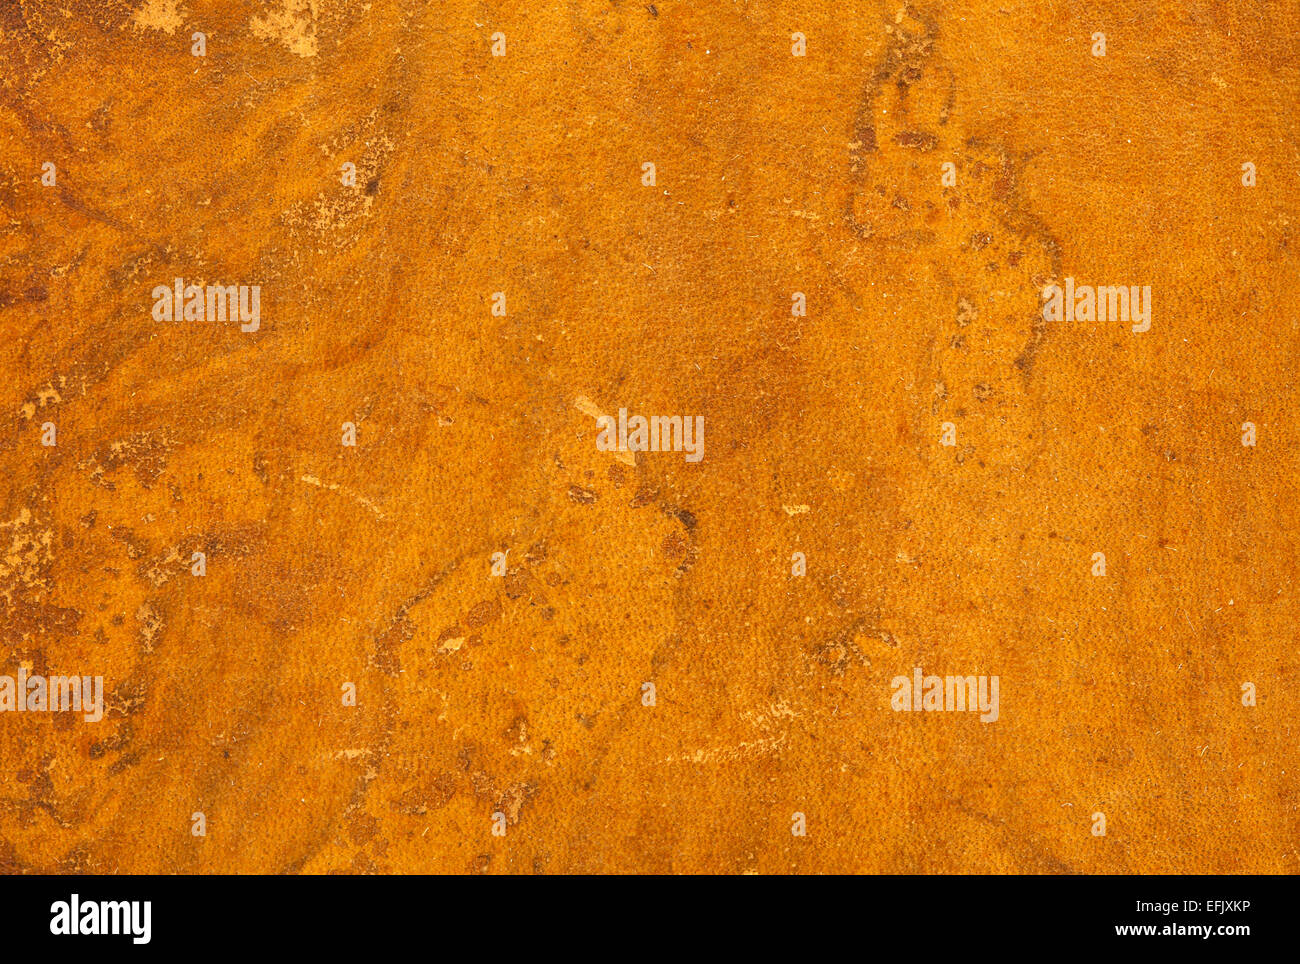 Book Cover Background Questions : Brown tan leather book cover texture background stock